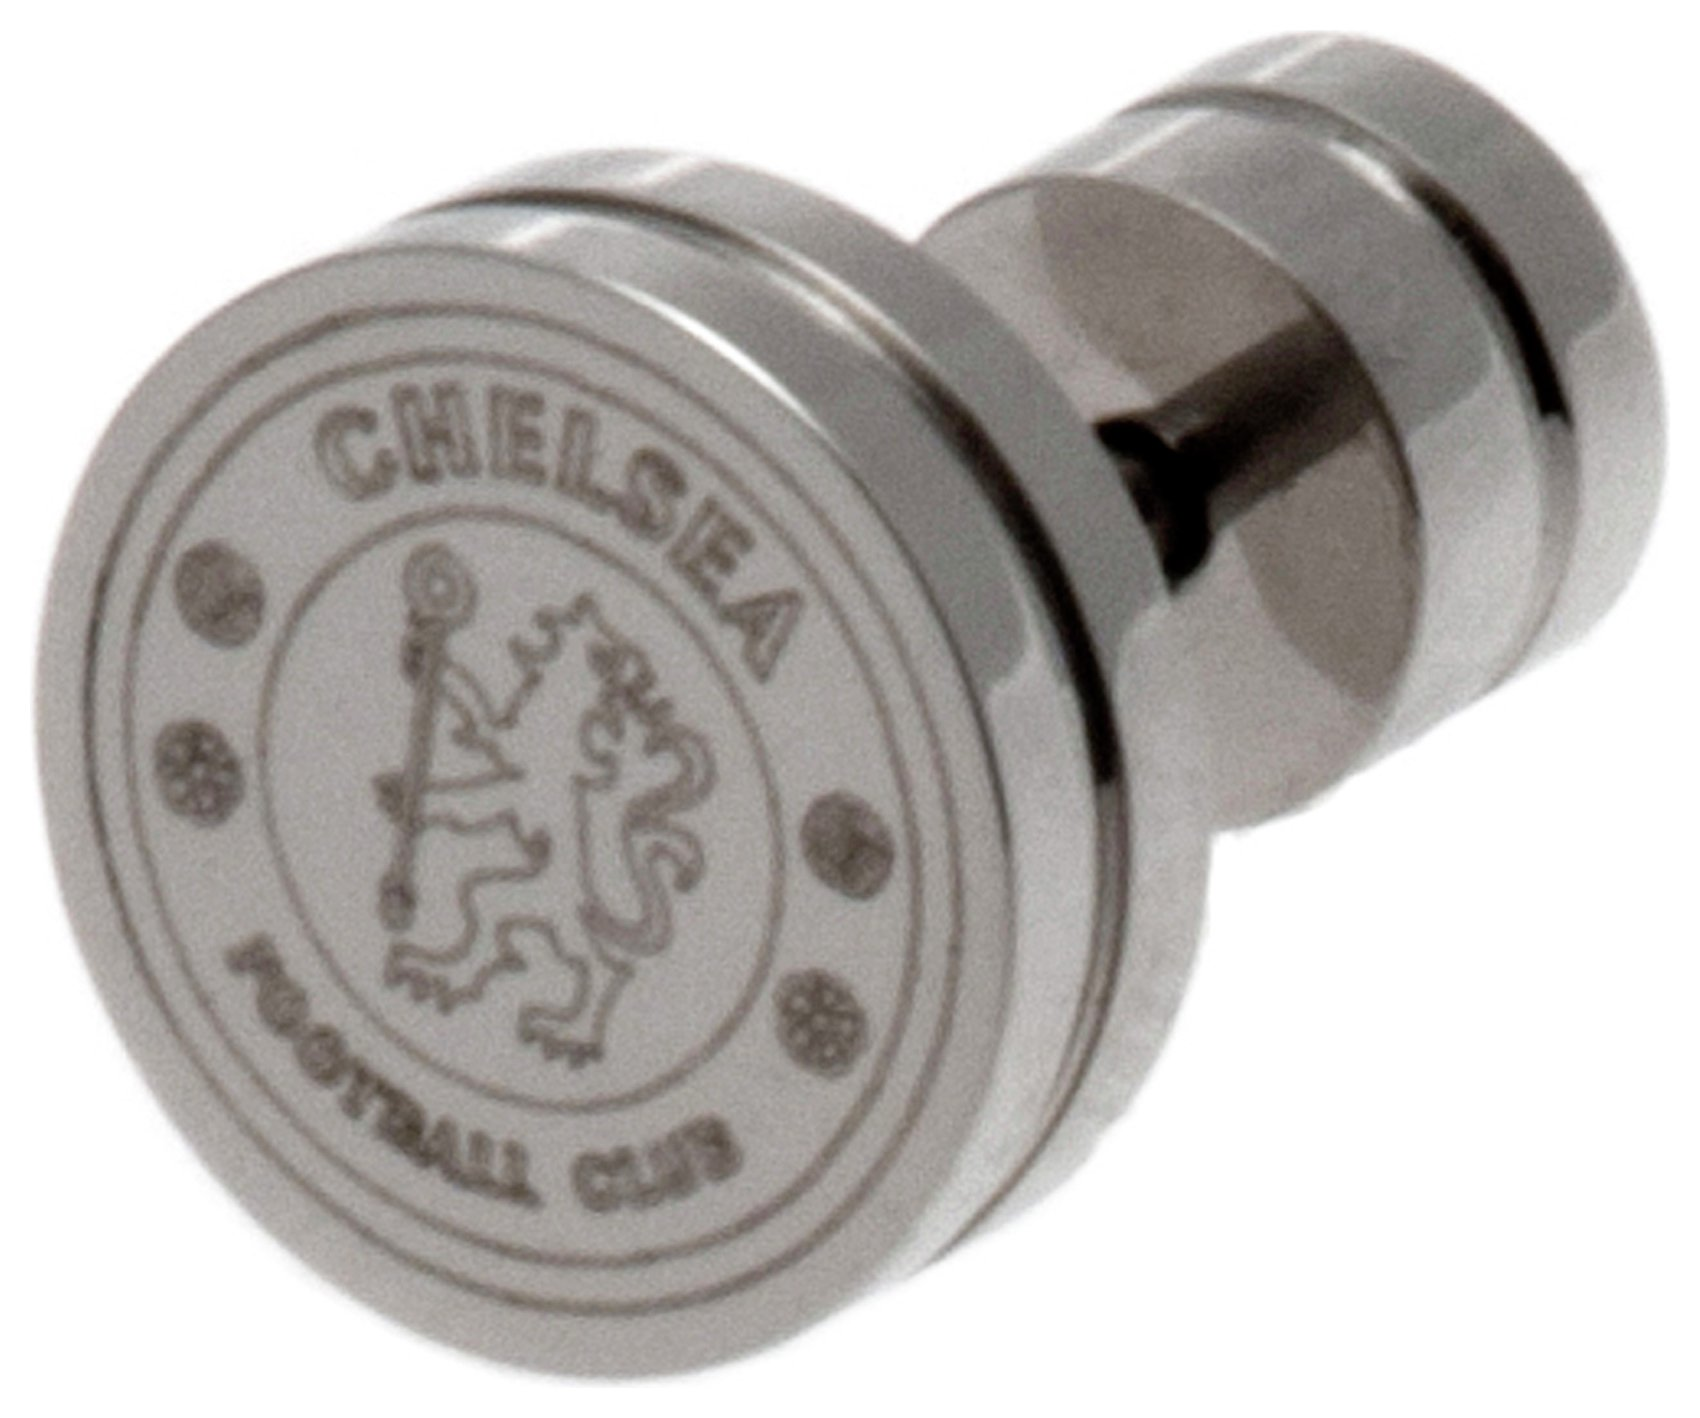 Image of Stainless Steel Chelsea Crest Stud Earring.